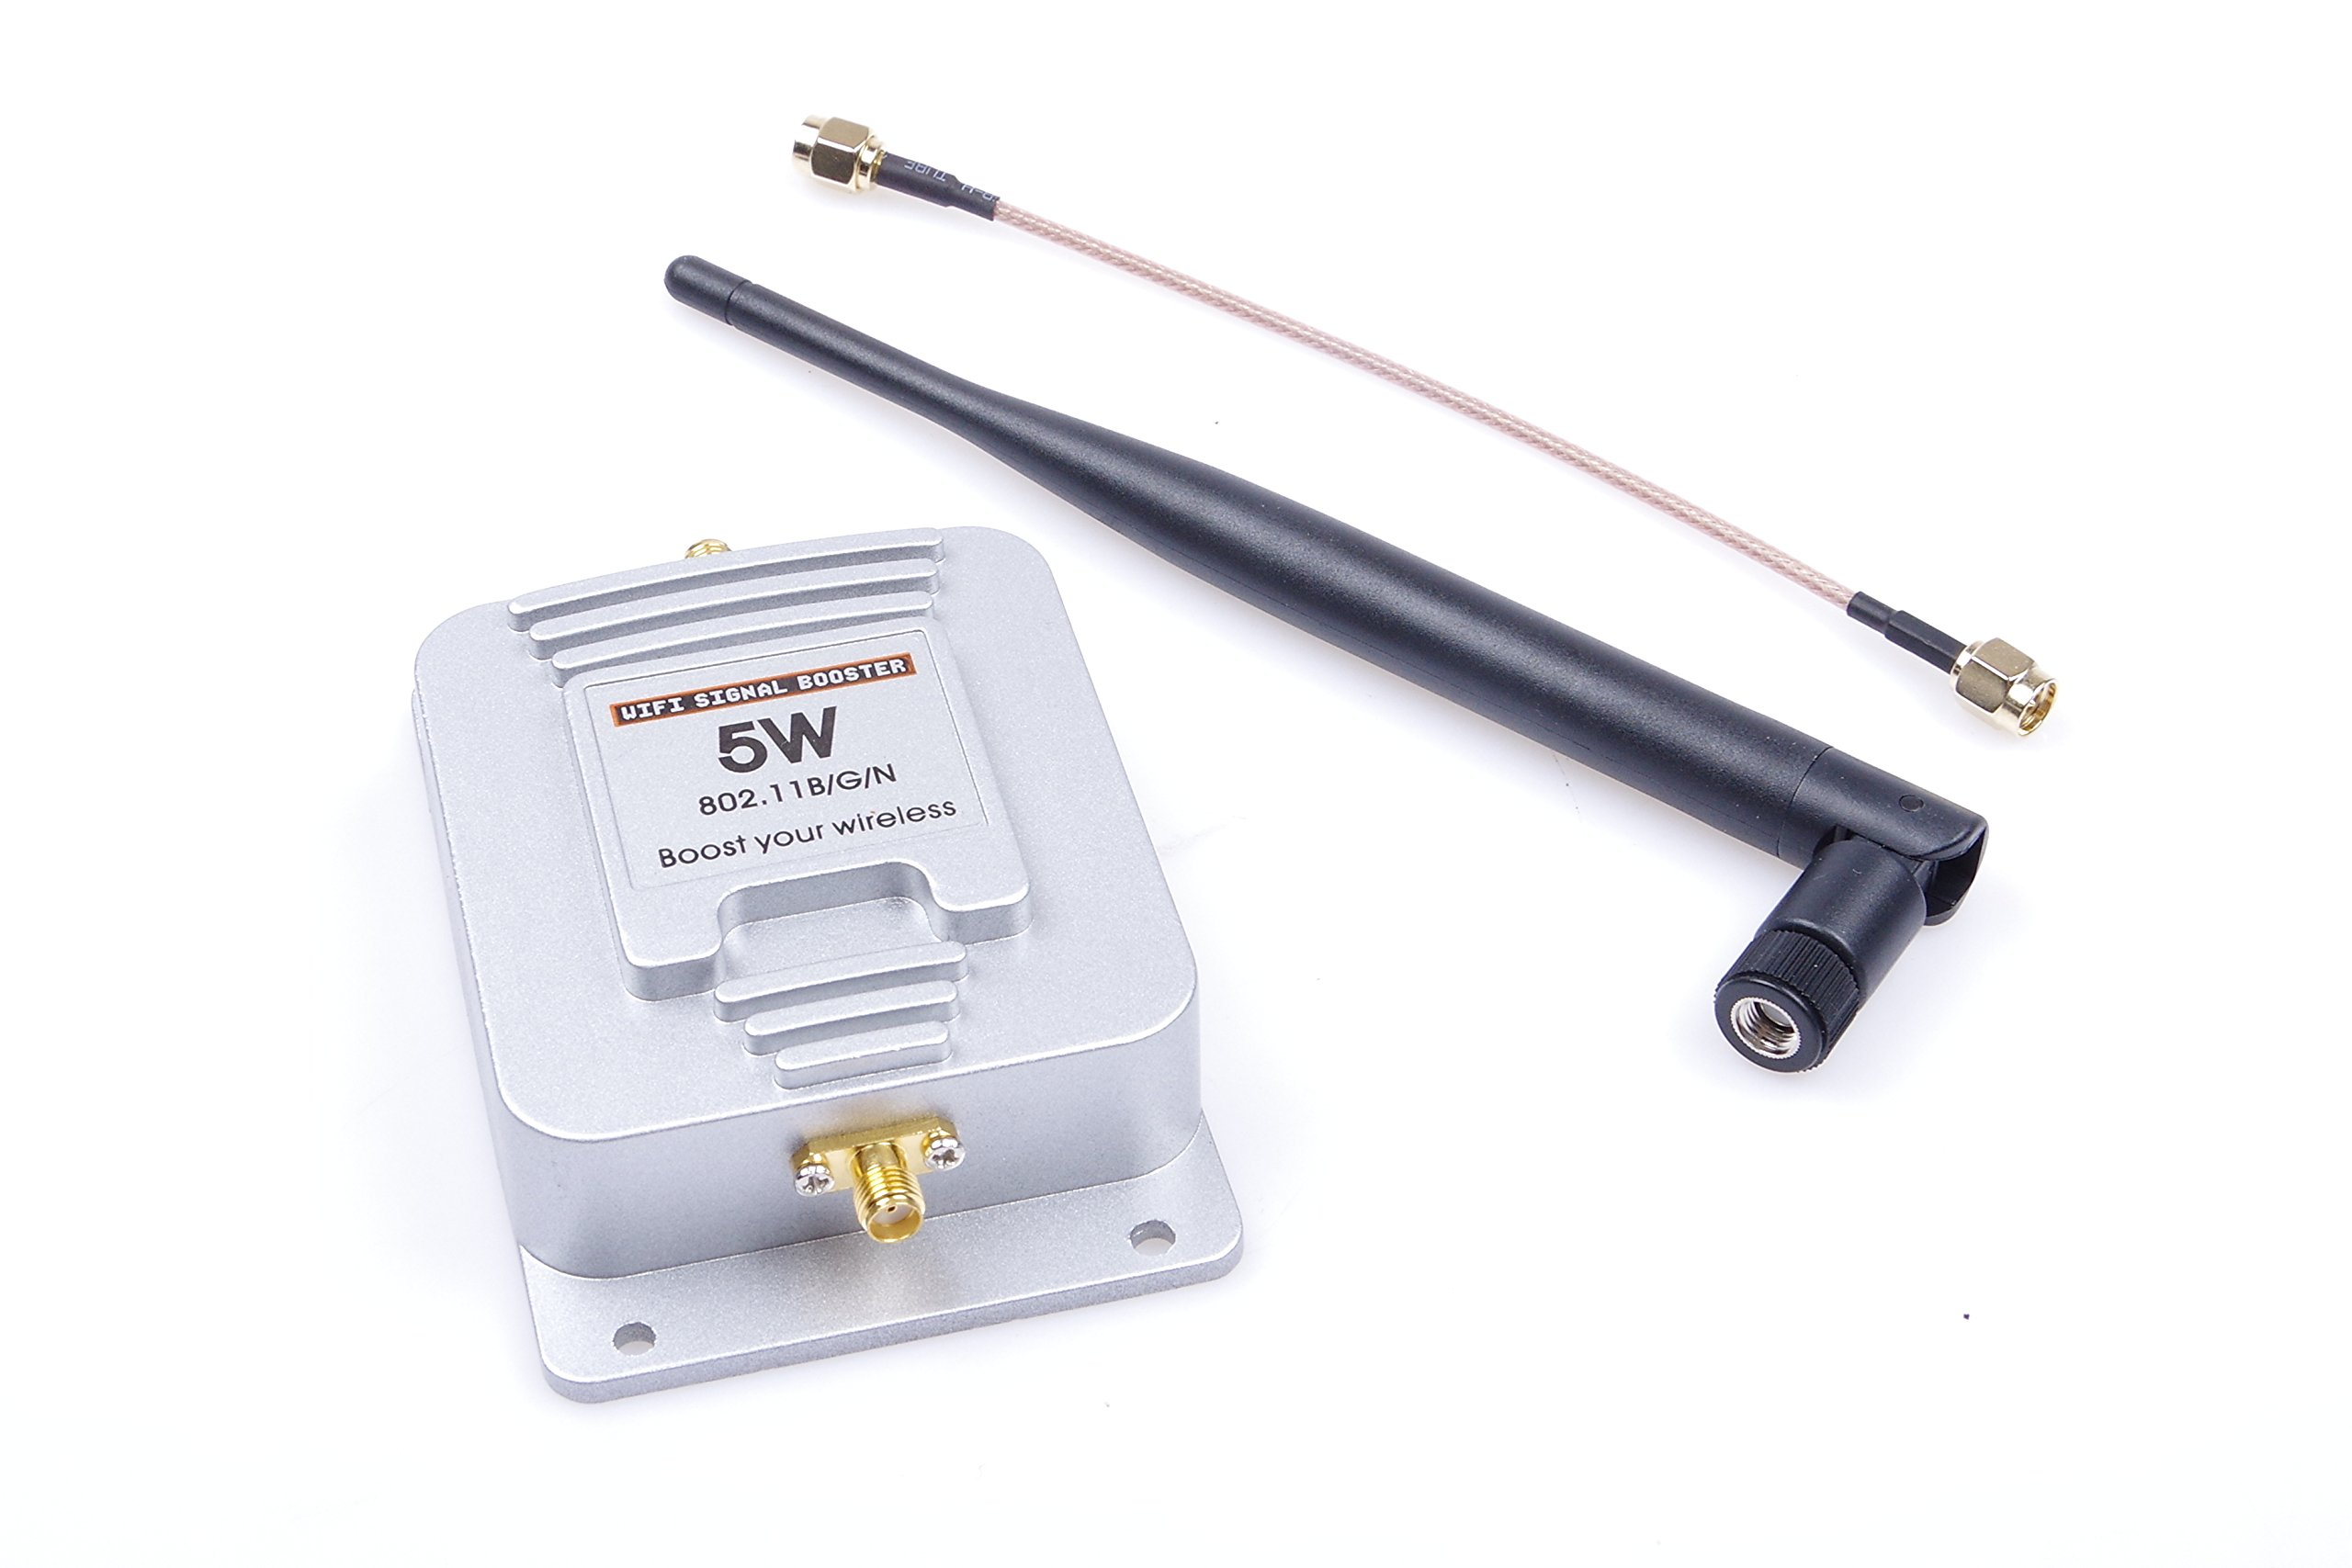 5W 2.4GHz WIFI Signal Booster 802.11B/G/N Bidirectional Power Amplifier,Working Voltage DC 6-18V Boost your wireless by KNACRO (Image #3)